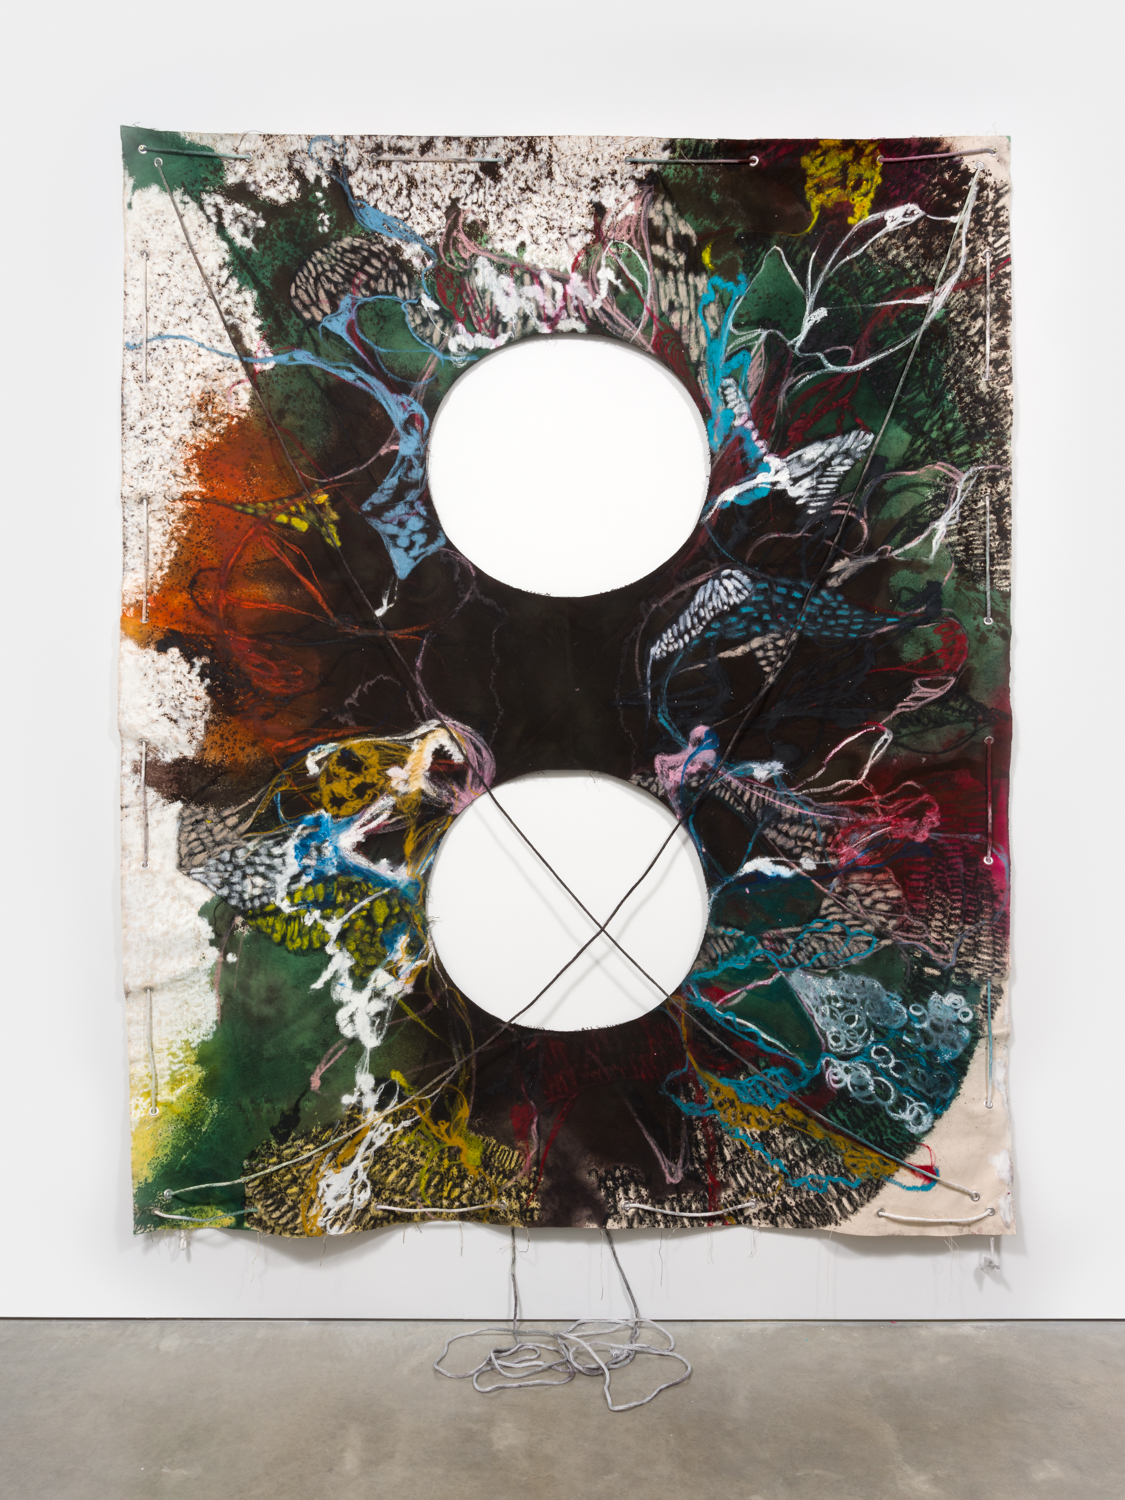 NaotakaHiro Untitled (Mirror Lake), 2018 Canvas, fabric dye, oil pastel, rope and grommets 108h x 84w in NaoH033